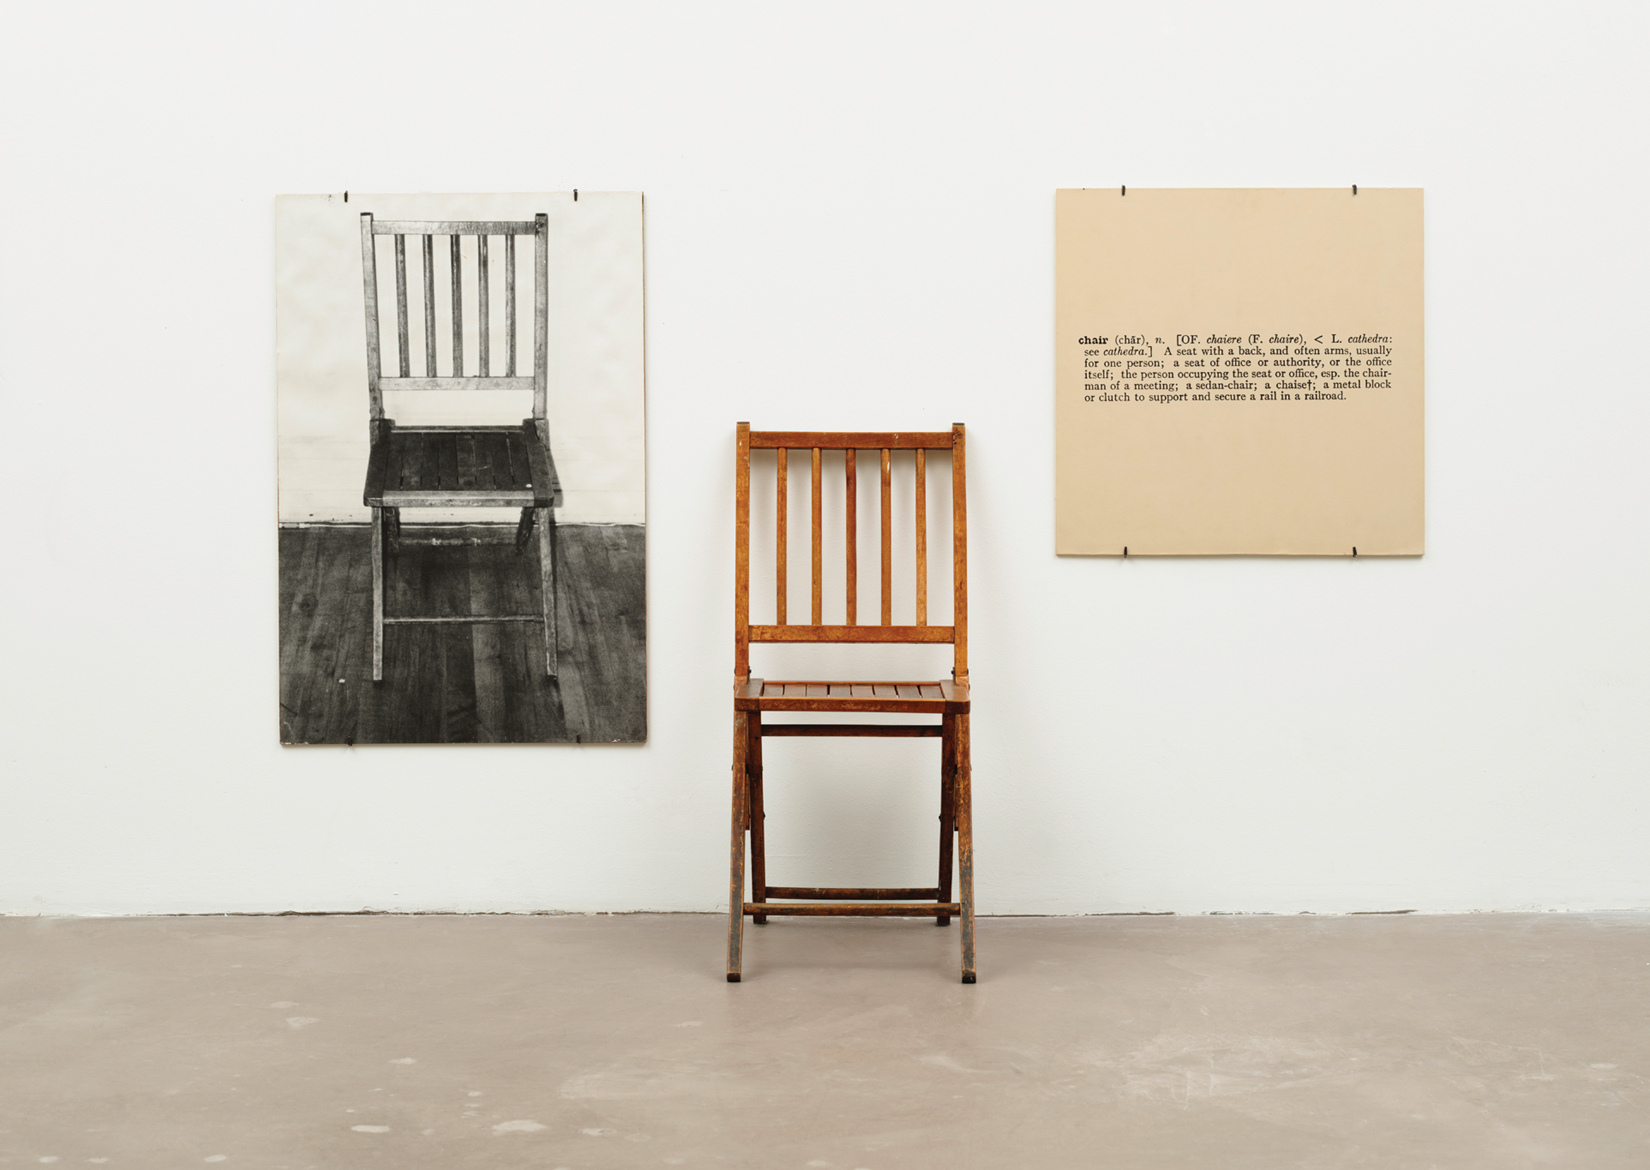 One and Three Chairs, installation